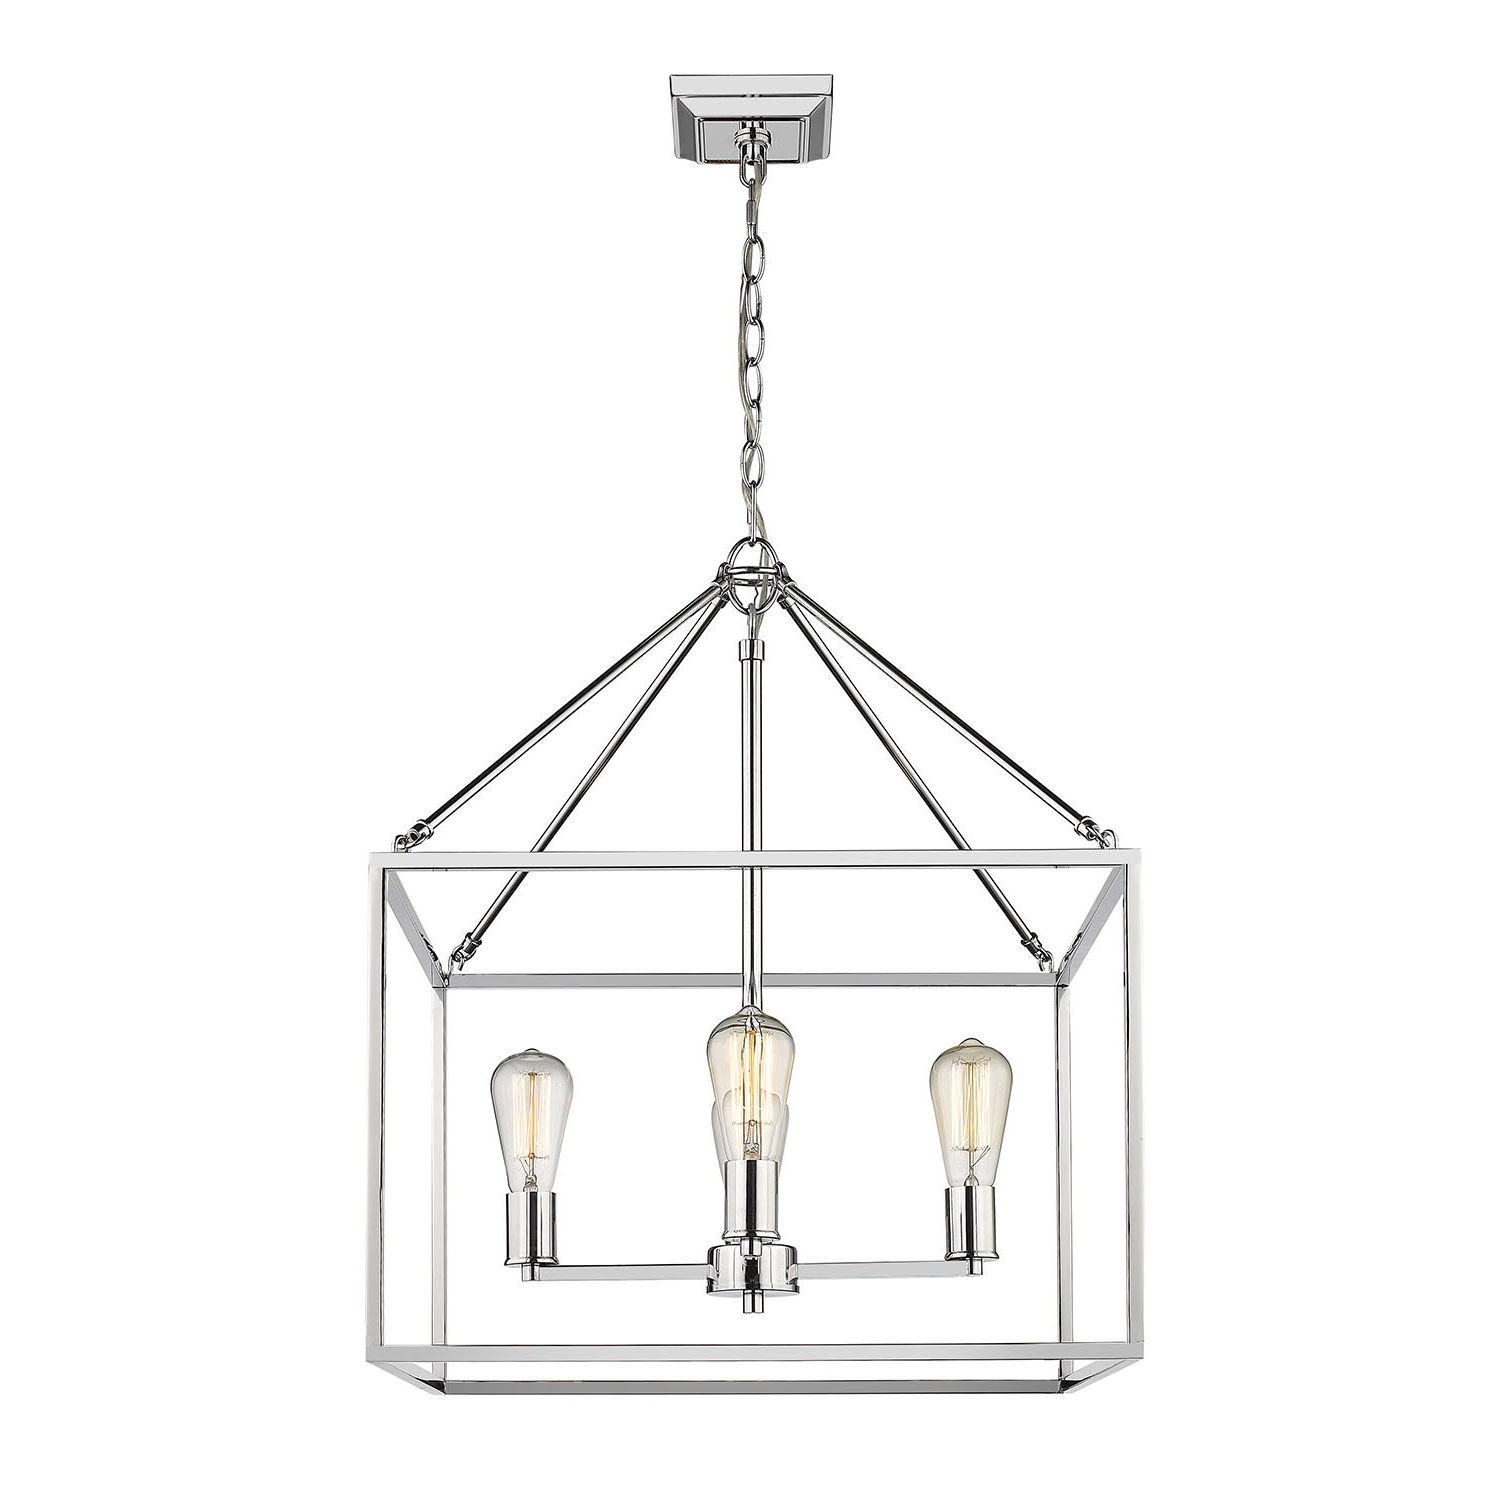 Odie 4 Light Lantern Square Pendants Within Widely Used Zabel 4 Light Lantern Square / Rectangle Pendant (View 10 of 20)